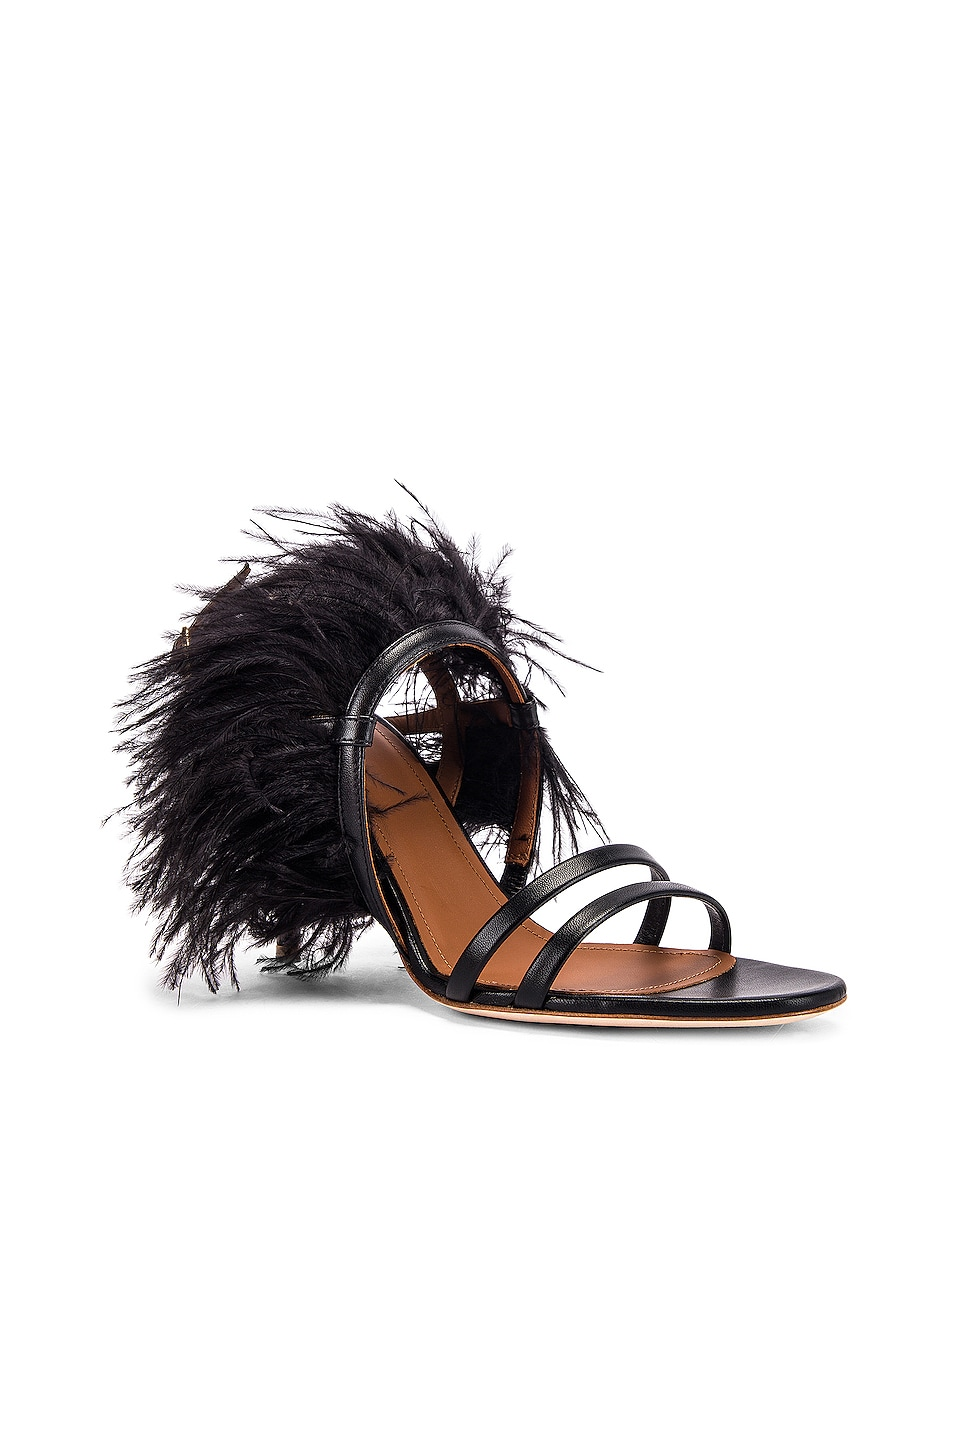 Image 2 of Malone Souliers Sonia MS 85 Heel in Black